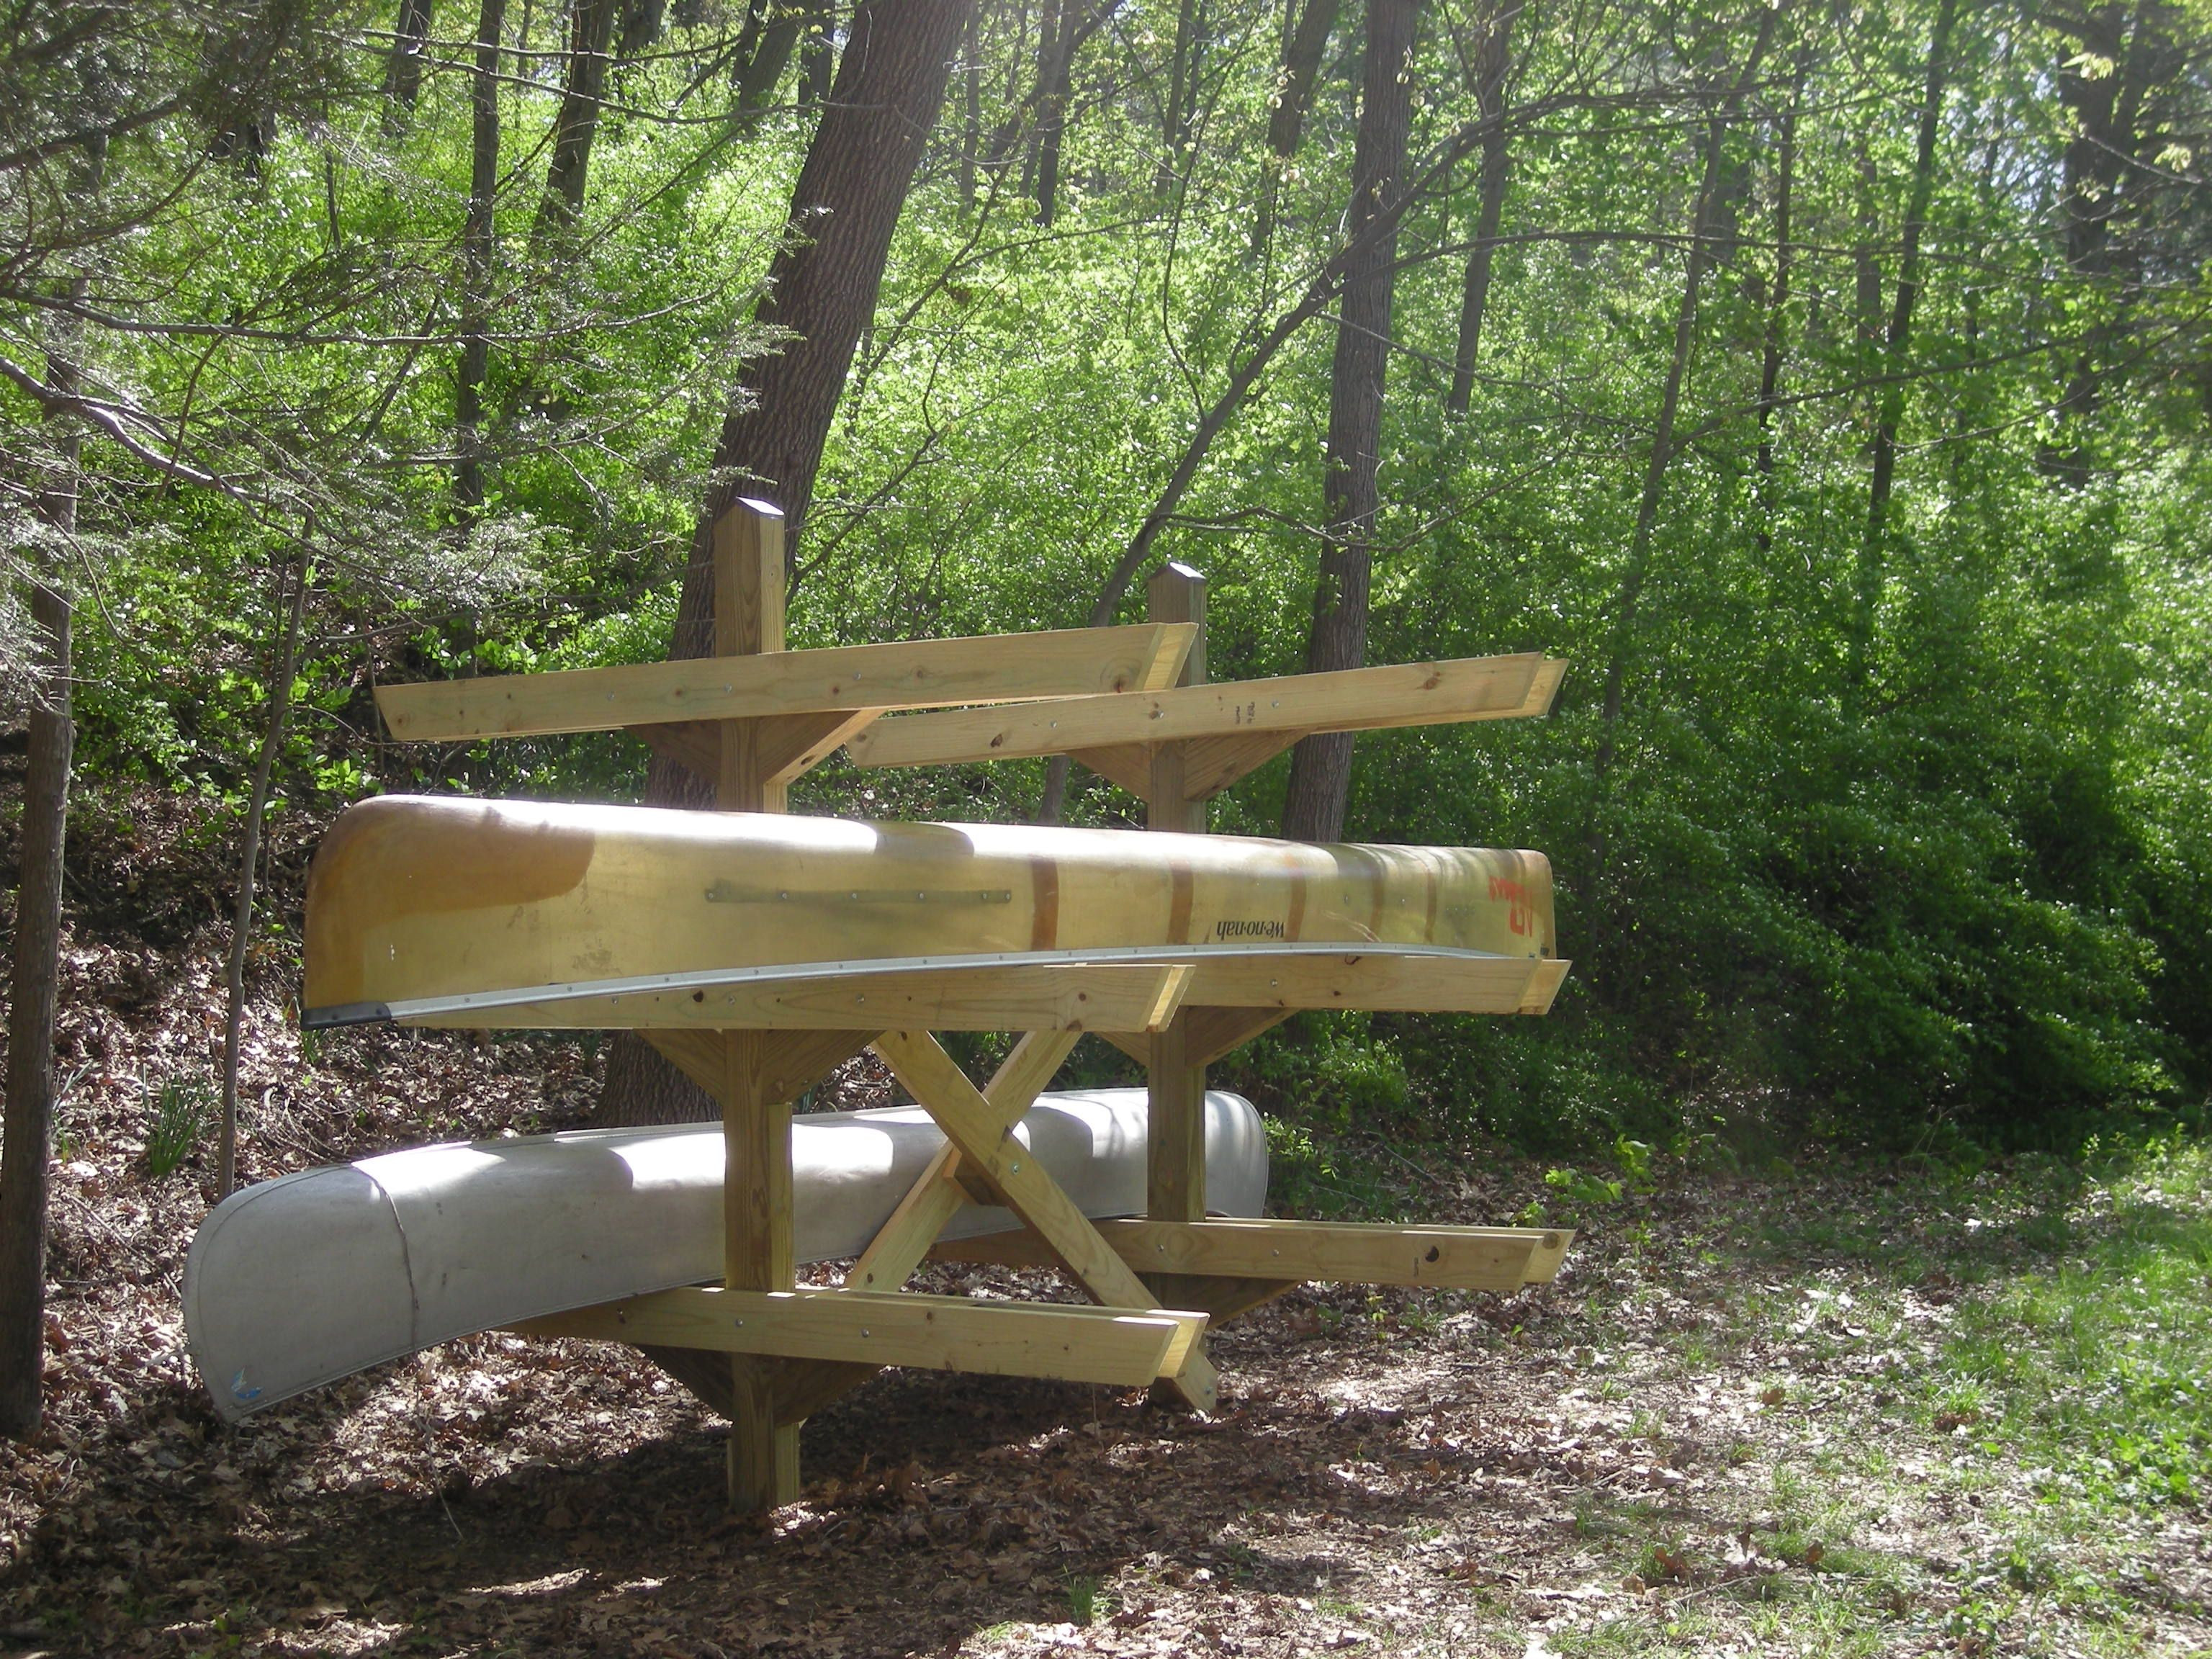 Best ideas about DIY Canoe Rack . Save or Pin Canoe Rack at Riverbend Apr 2010 by PAL Now.